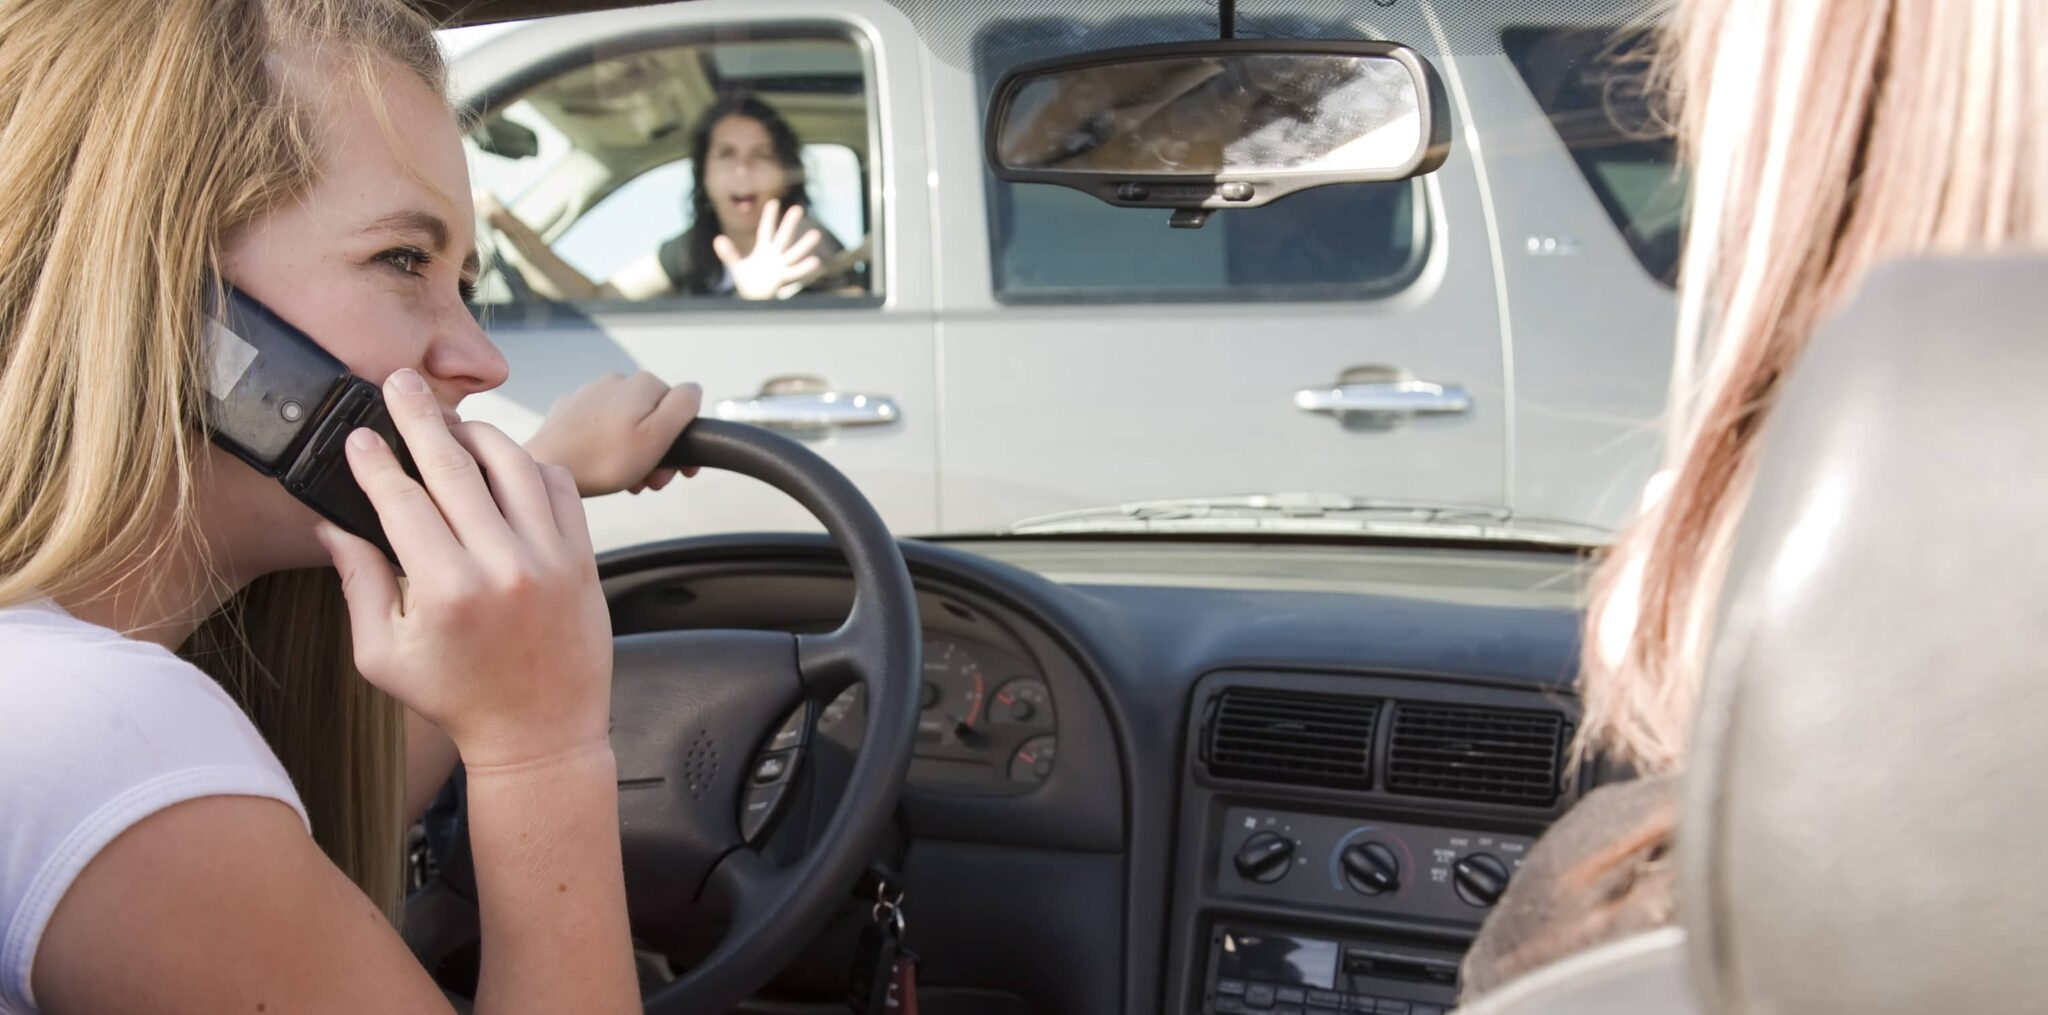 Girl talks on a phone and laughs with passenger as she dangerously approaches another driver who is in a vehicle waving her hand in front of her, fearing a collision